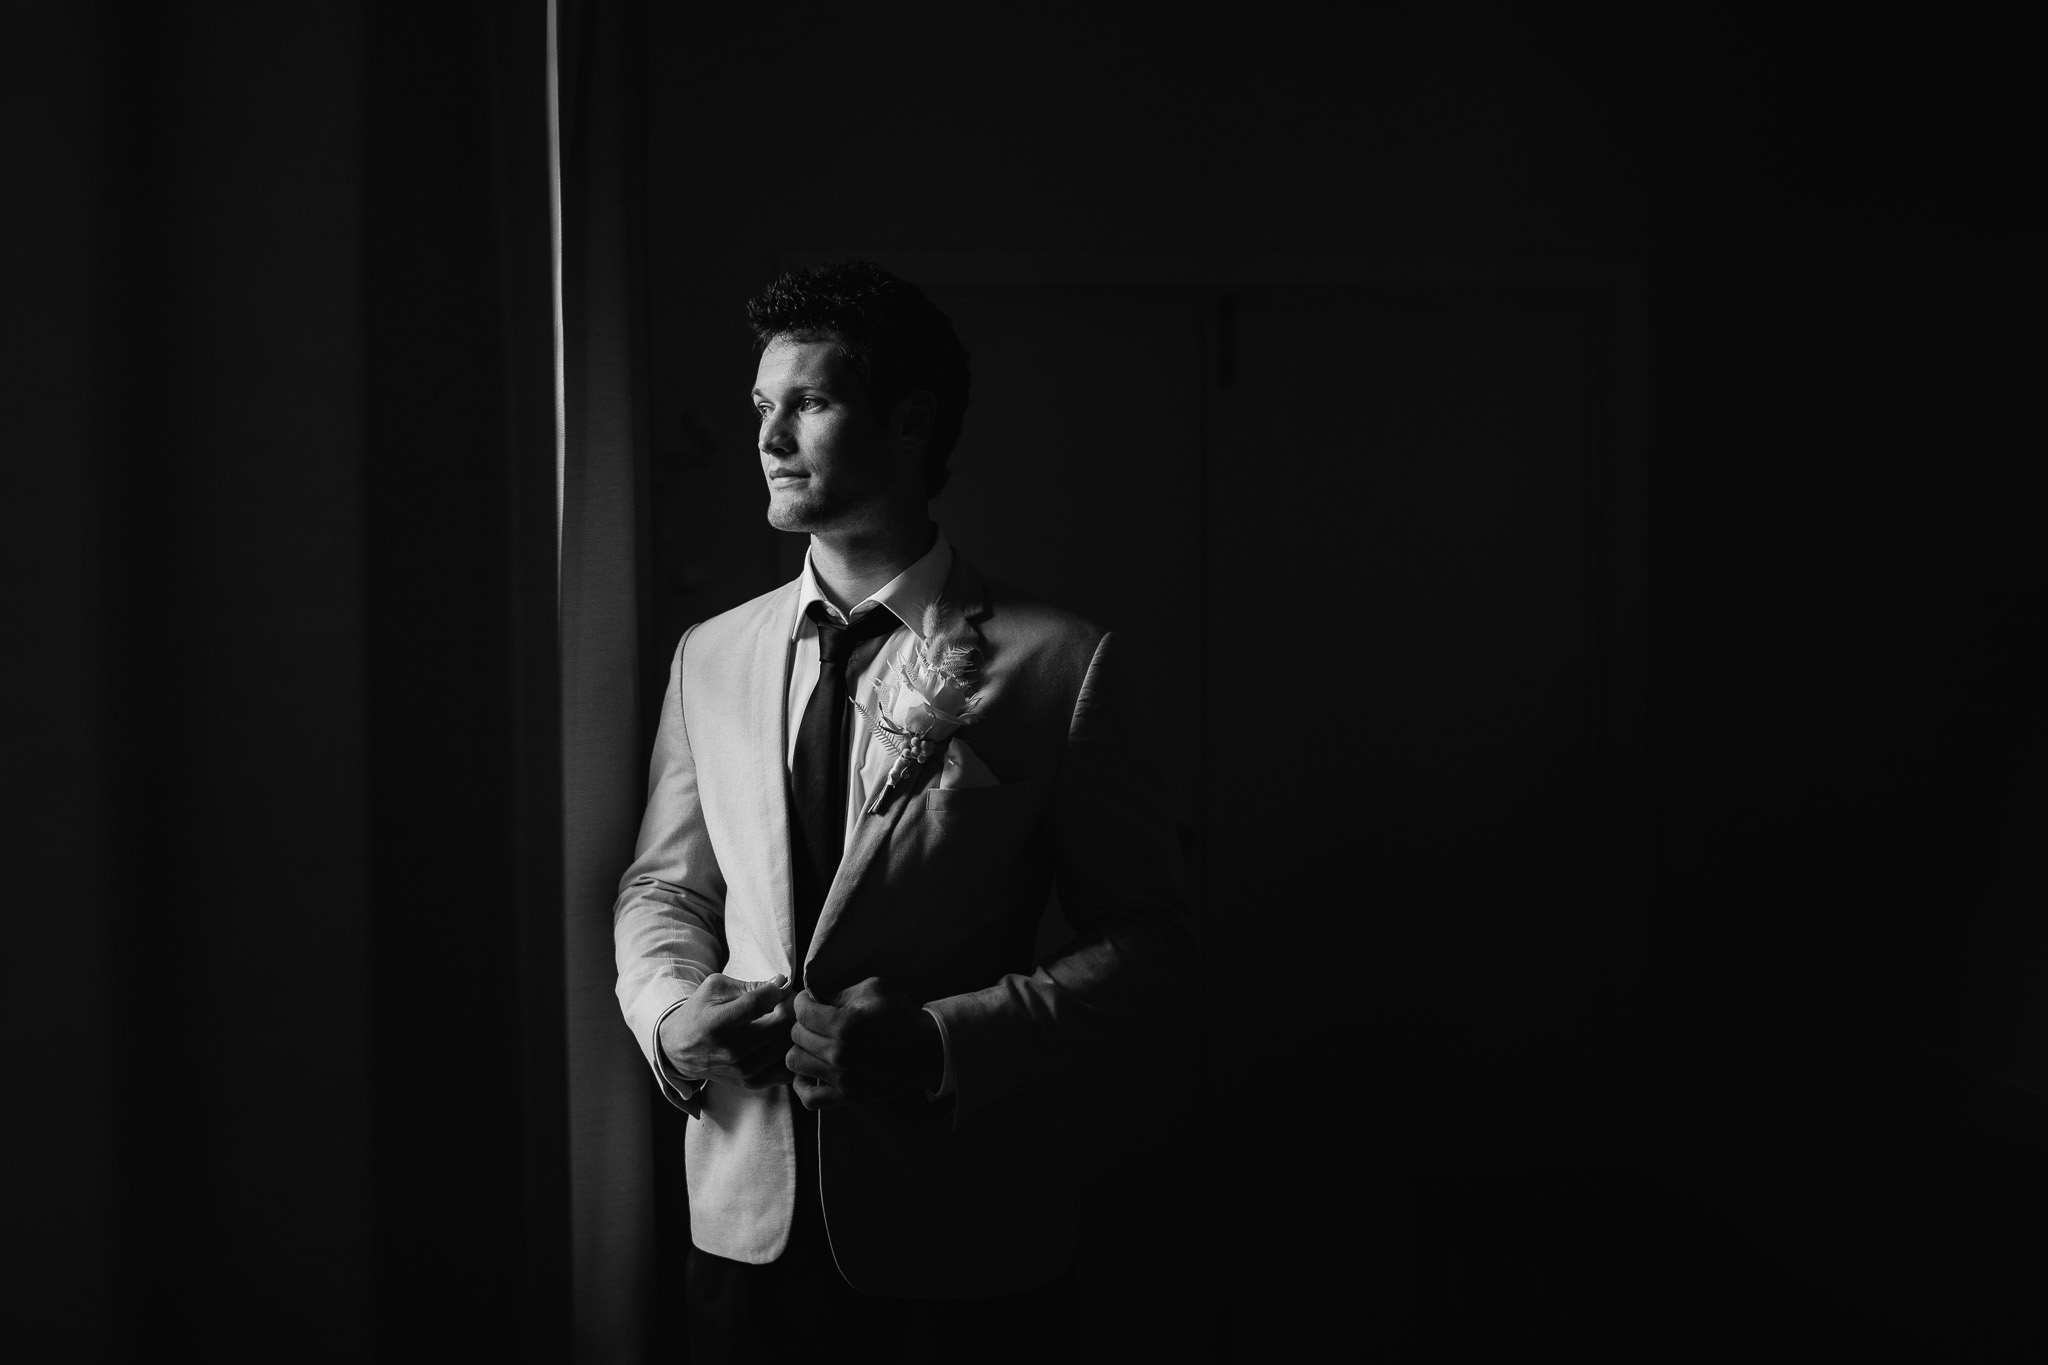 moody black and white portrait of groom just before wedding ceremony